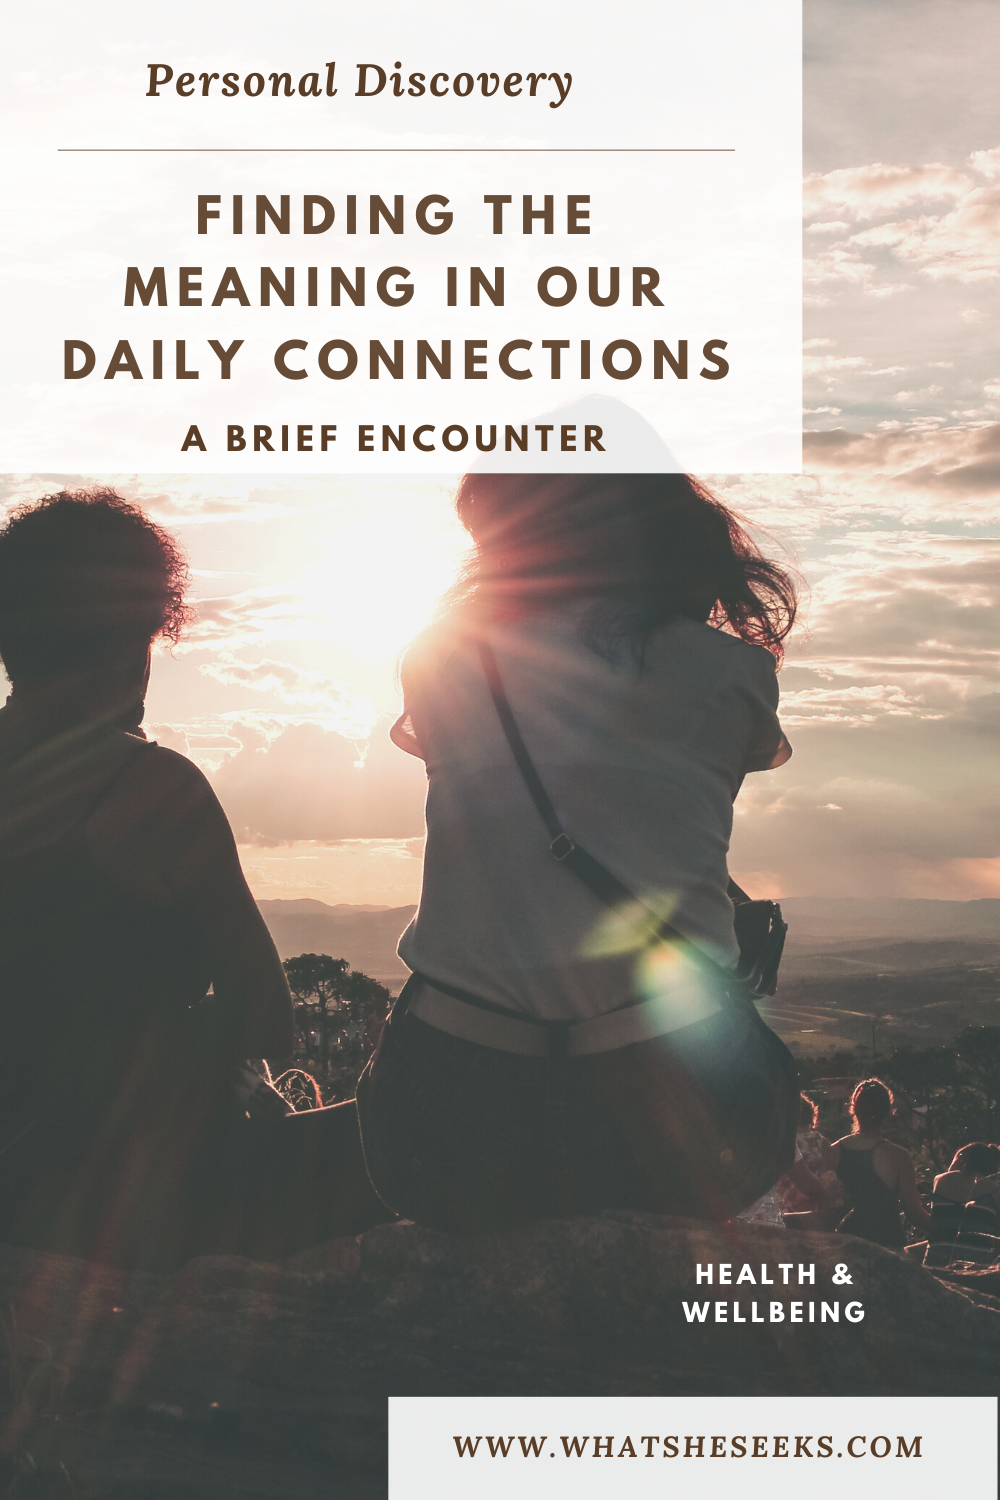 How do you find meaning in your daily connections? Do you learn from your experiences? Are you able to gain insight into yourself through others? Read an inspirational story about a chance encounter. #whatsheseeks